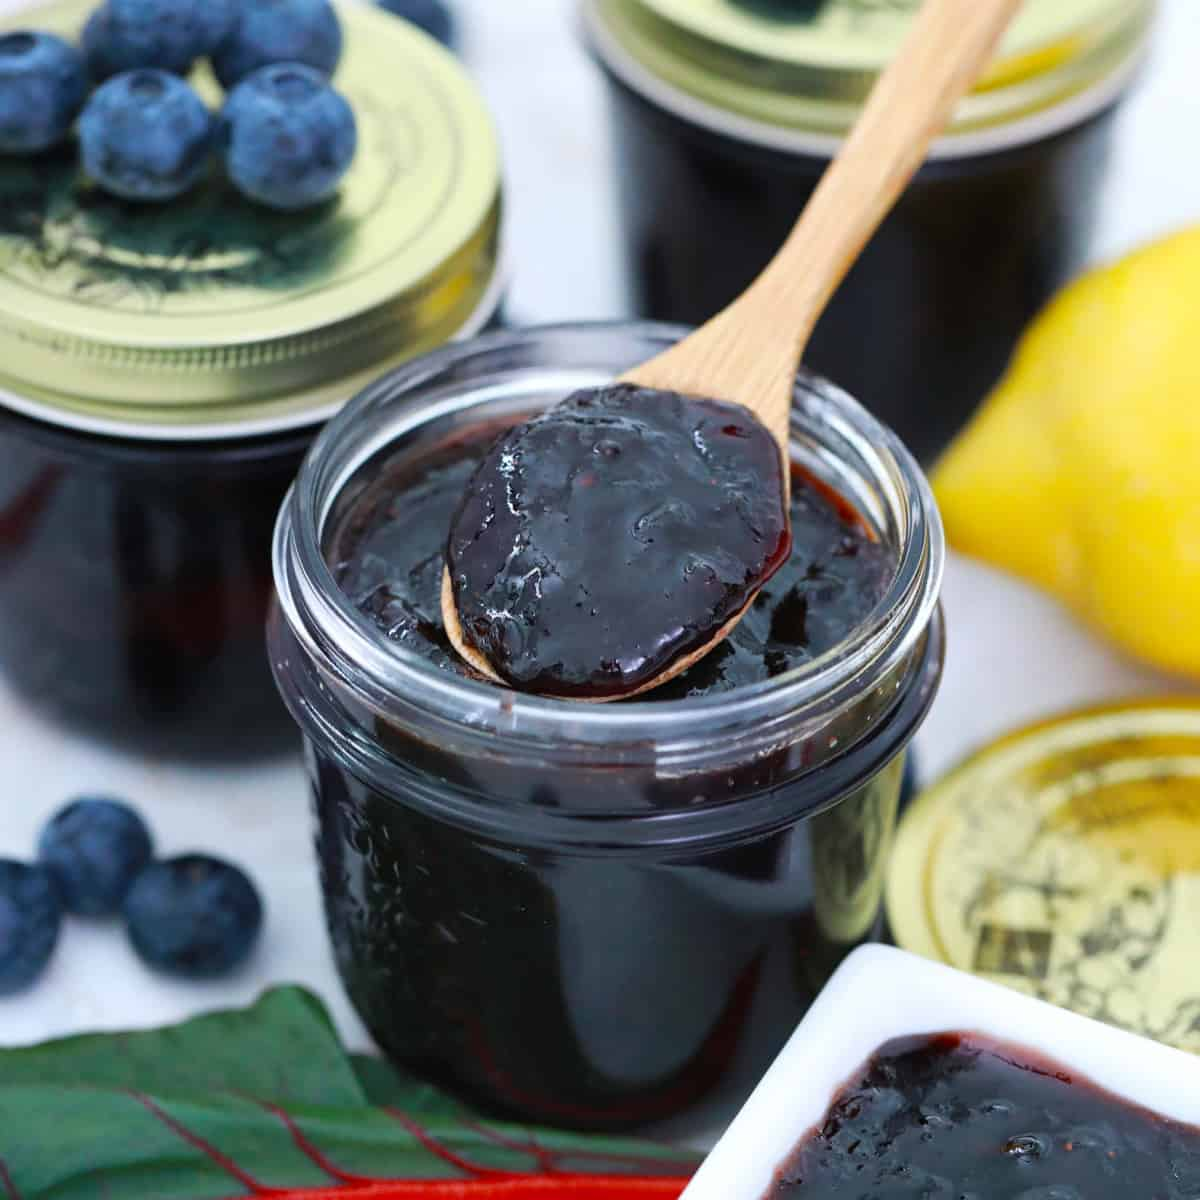 Spooning out blueberry rhubarb jam